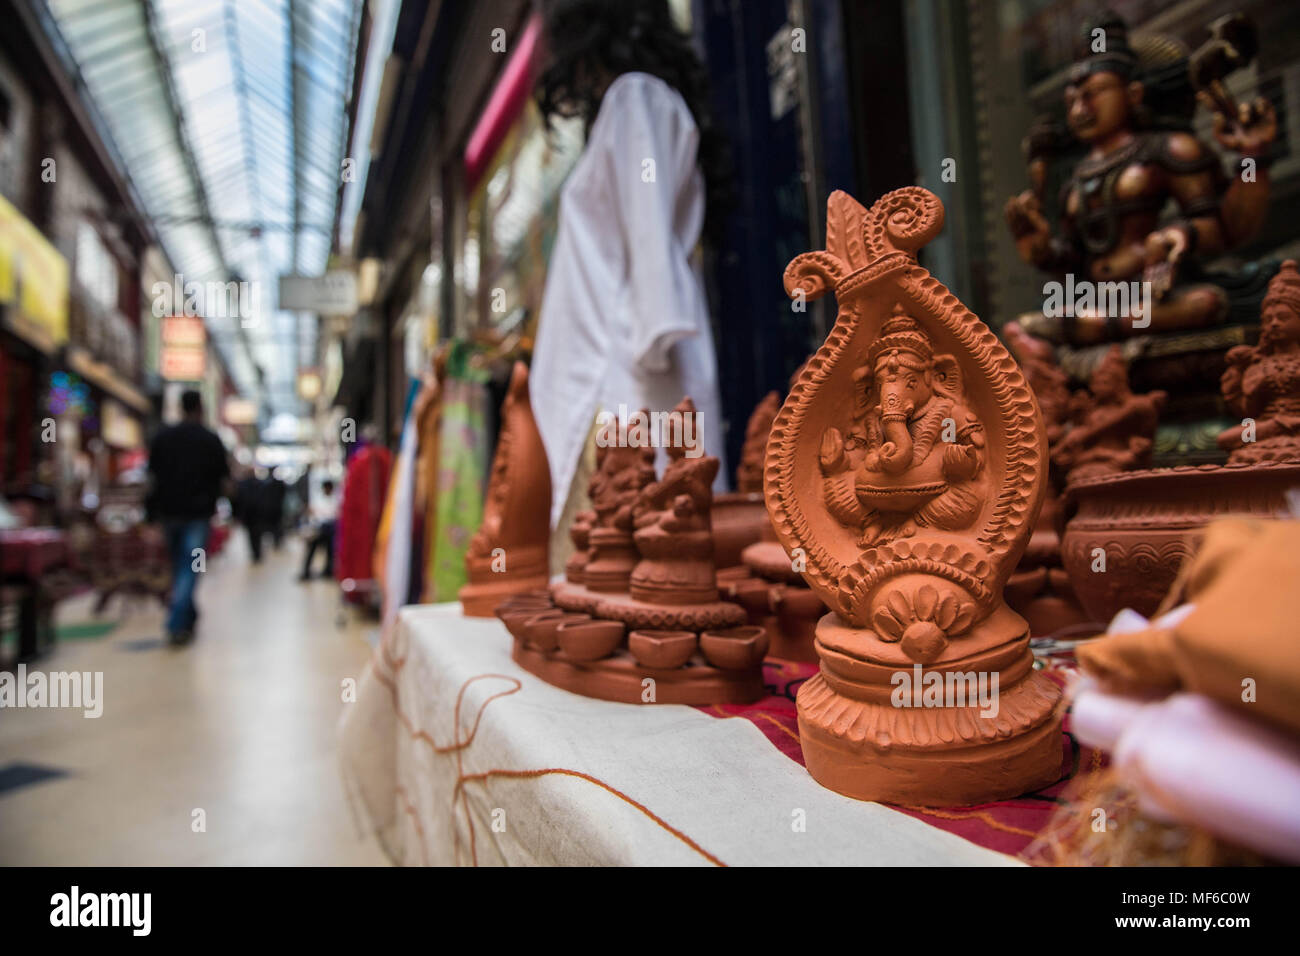 Ganesh Statue in der Passage Brady, Paris Stockbild